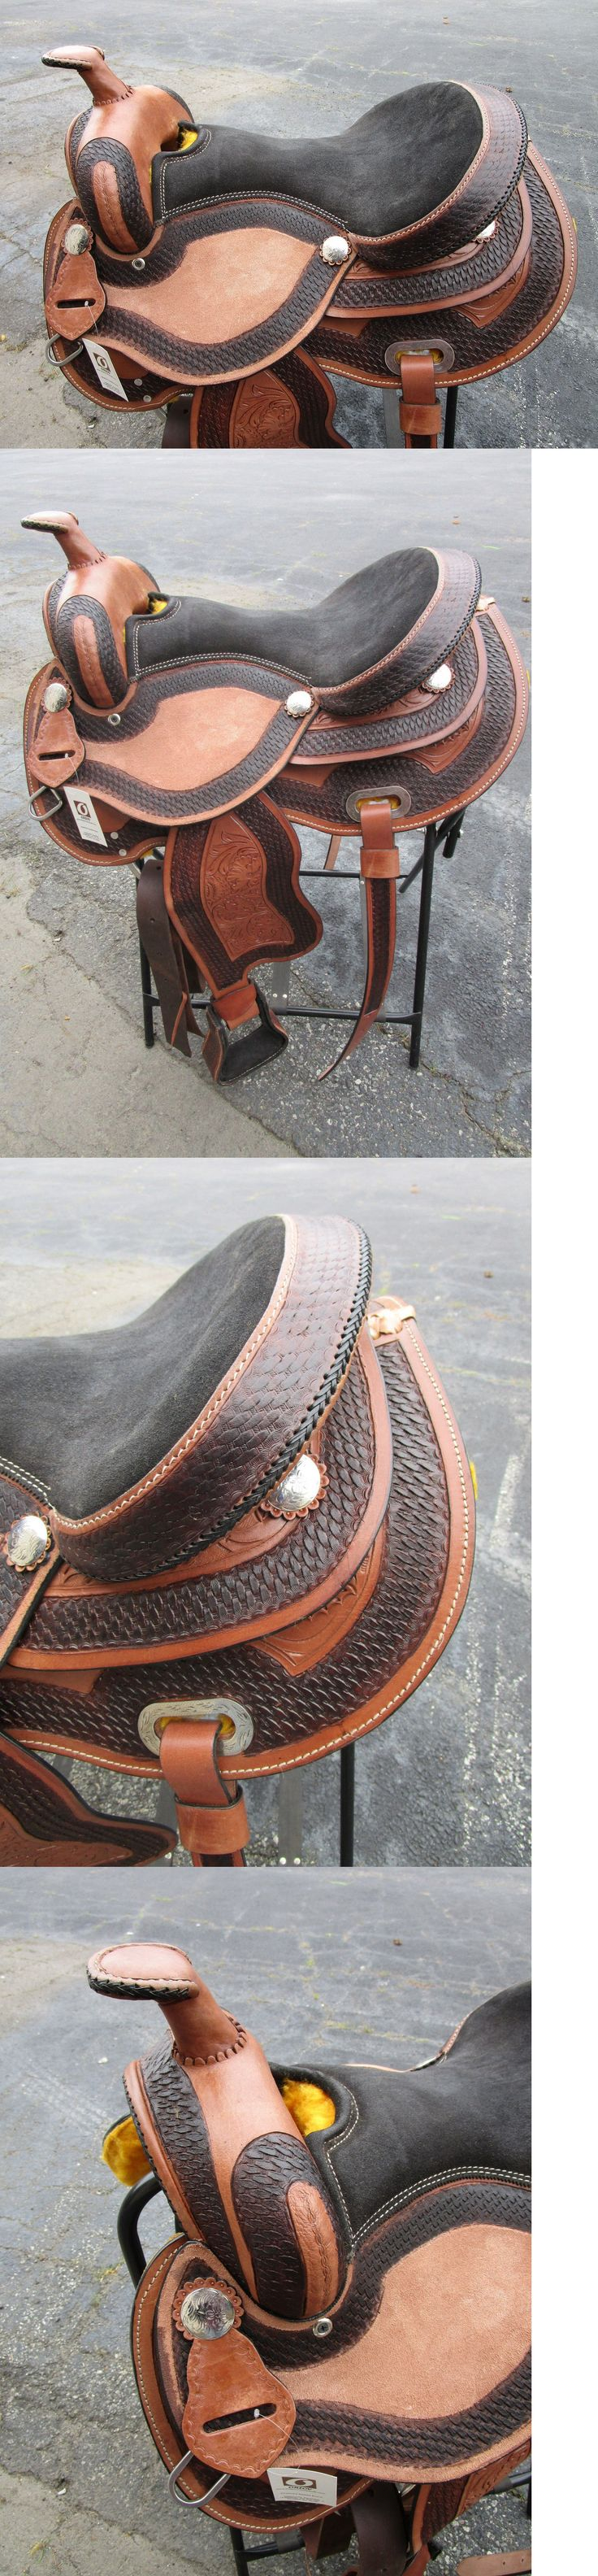 Saddles 47291: Gaited 15 16 Barrel Racing Show Pleasure Trail Leather Western Horse Saddle Tack -> BUY IT NOW ONLY: $278.99 on eBay!